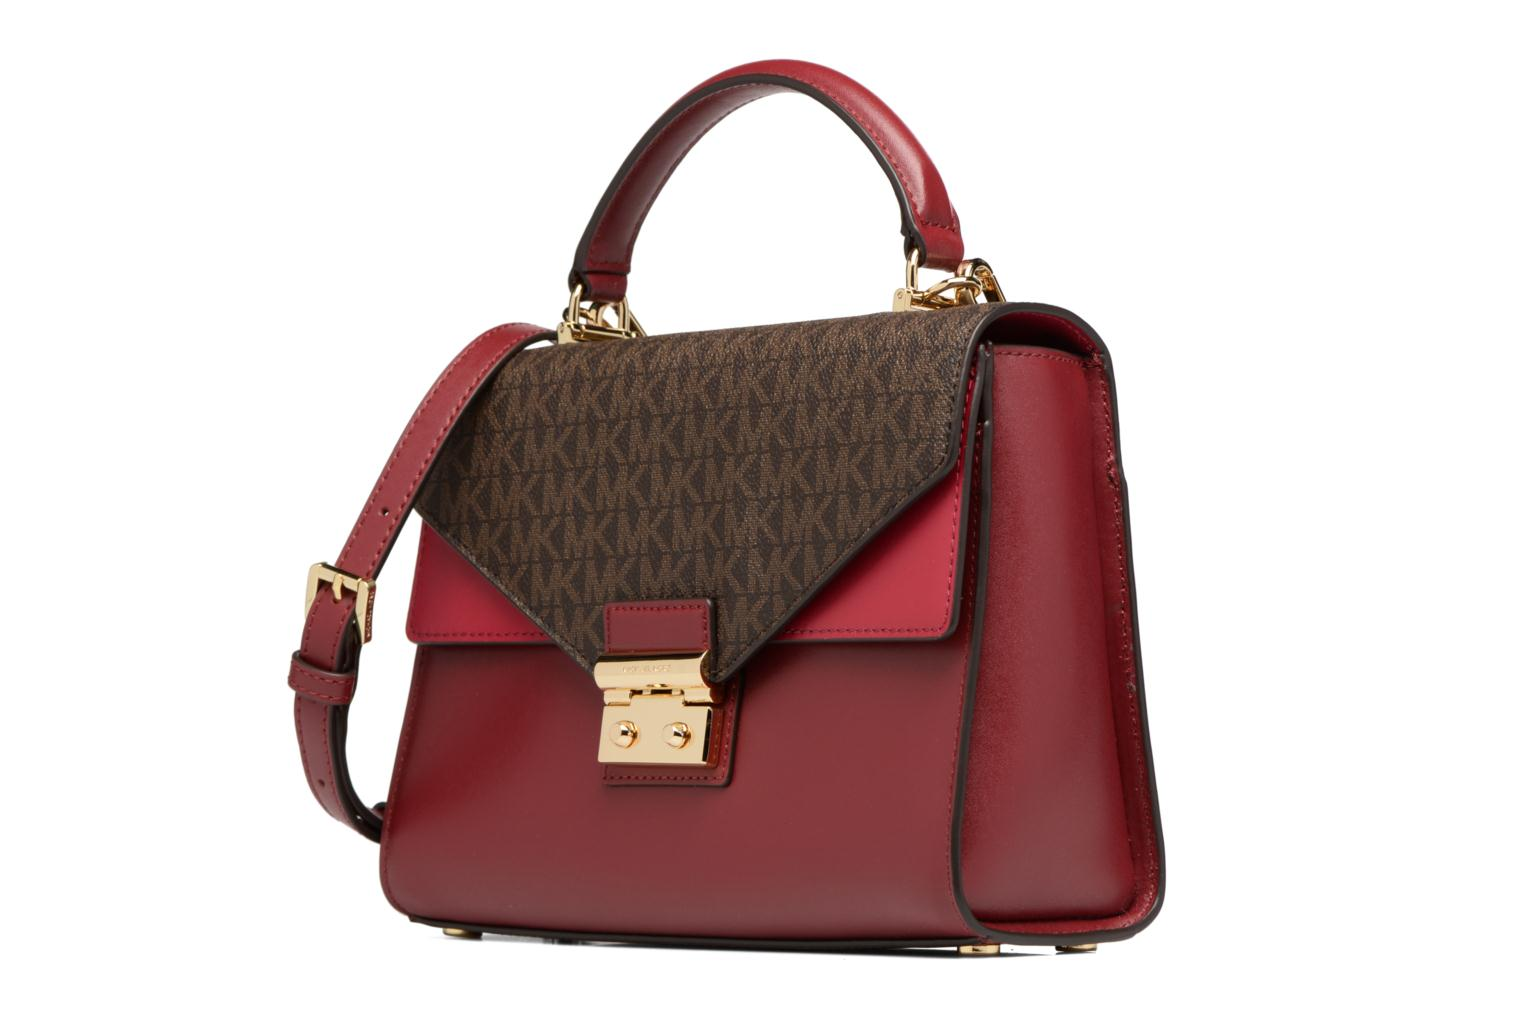 SLOAN MD TH SATCHEL 279BROWN MELBURY CRANBERRY